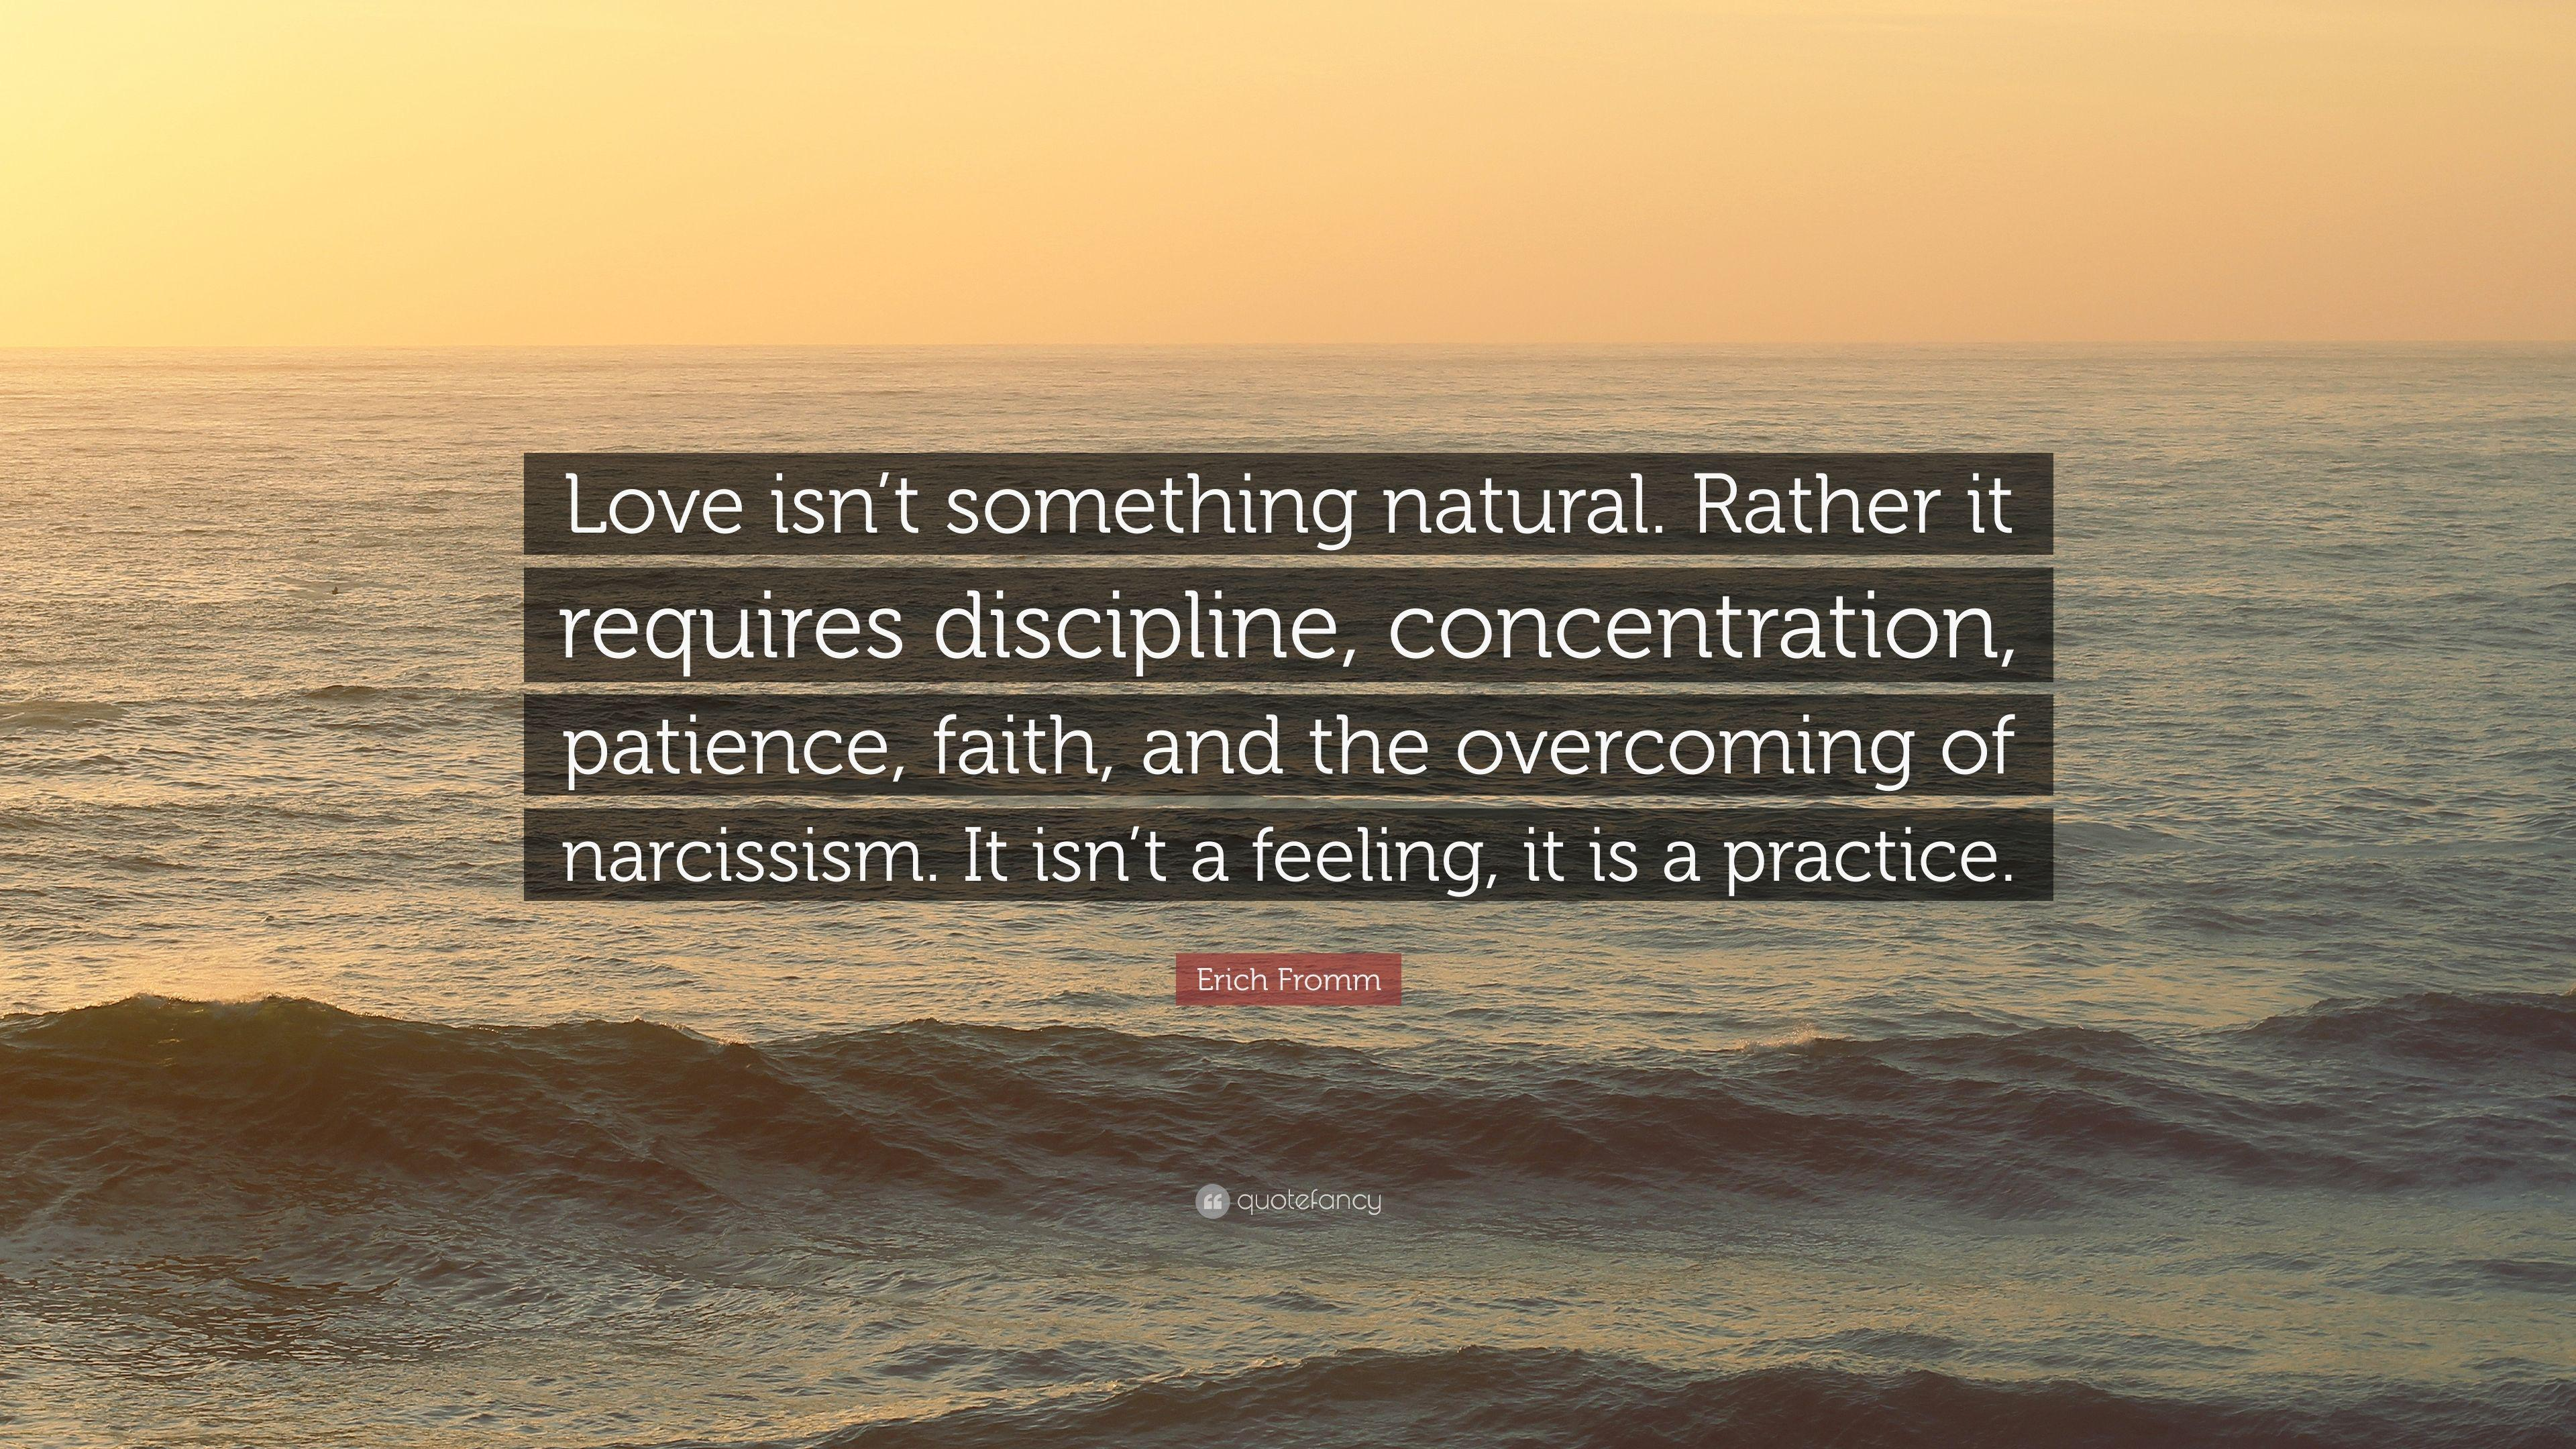 """Love isn't something natural. Rather it requires discipline, concentration, patience, faith, and the overcoming of narcissism. It isn't a feeling, it is a practice."" Eric Fromm, *The Art of Loving* [3840×2160]"